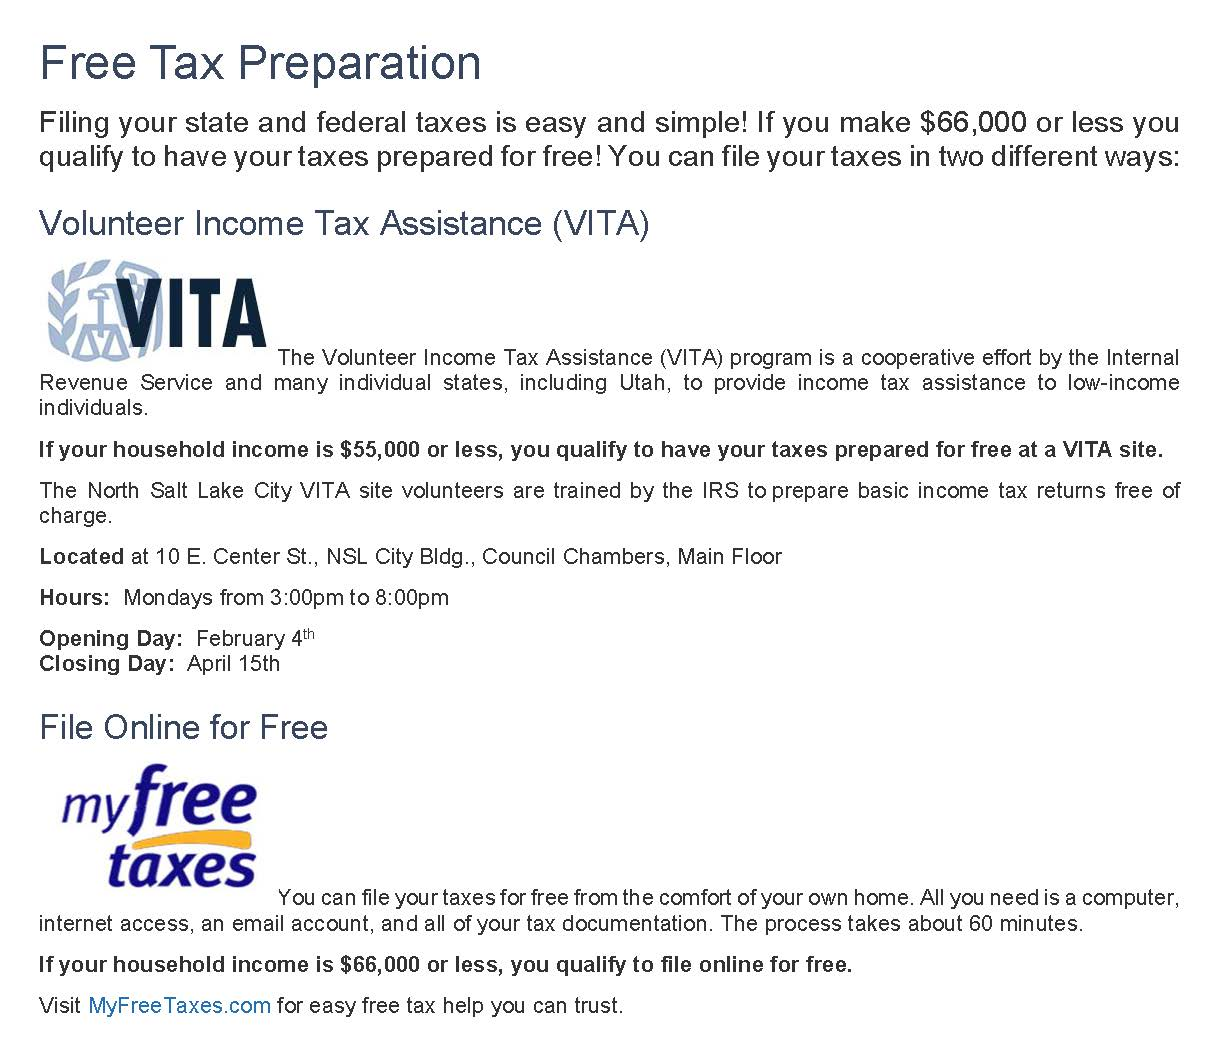 VITA 2019 Free Tax Preparation Message